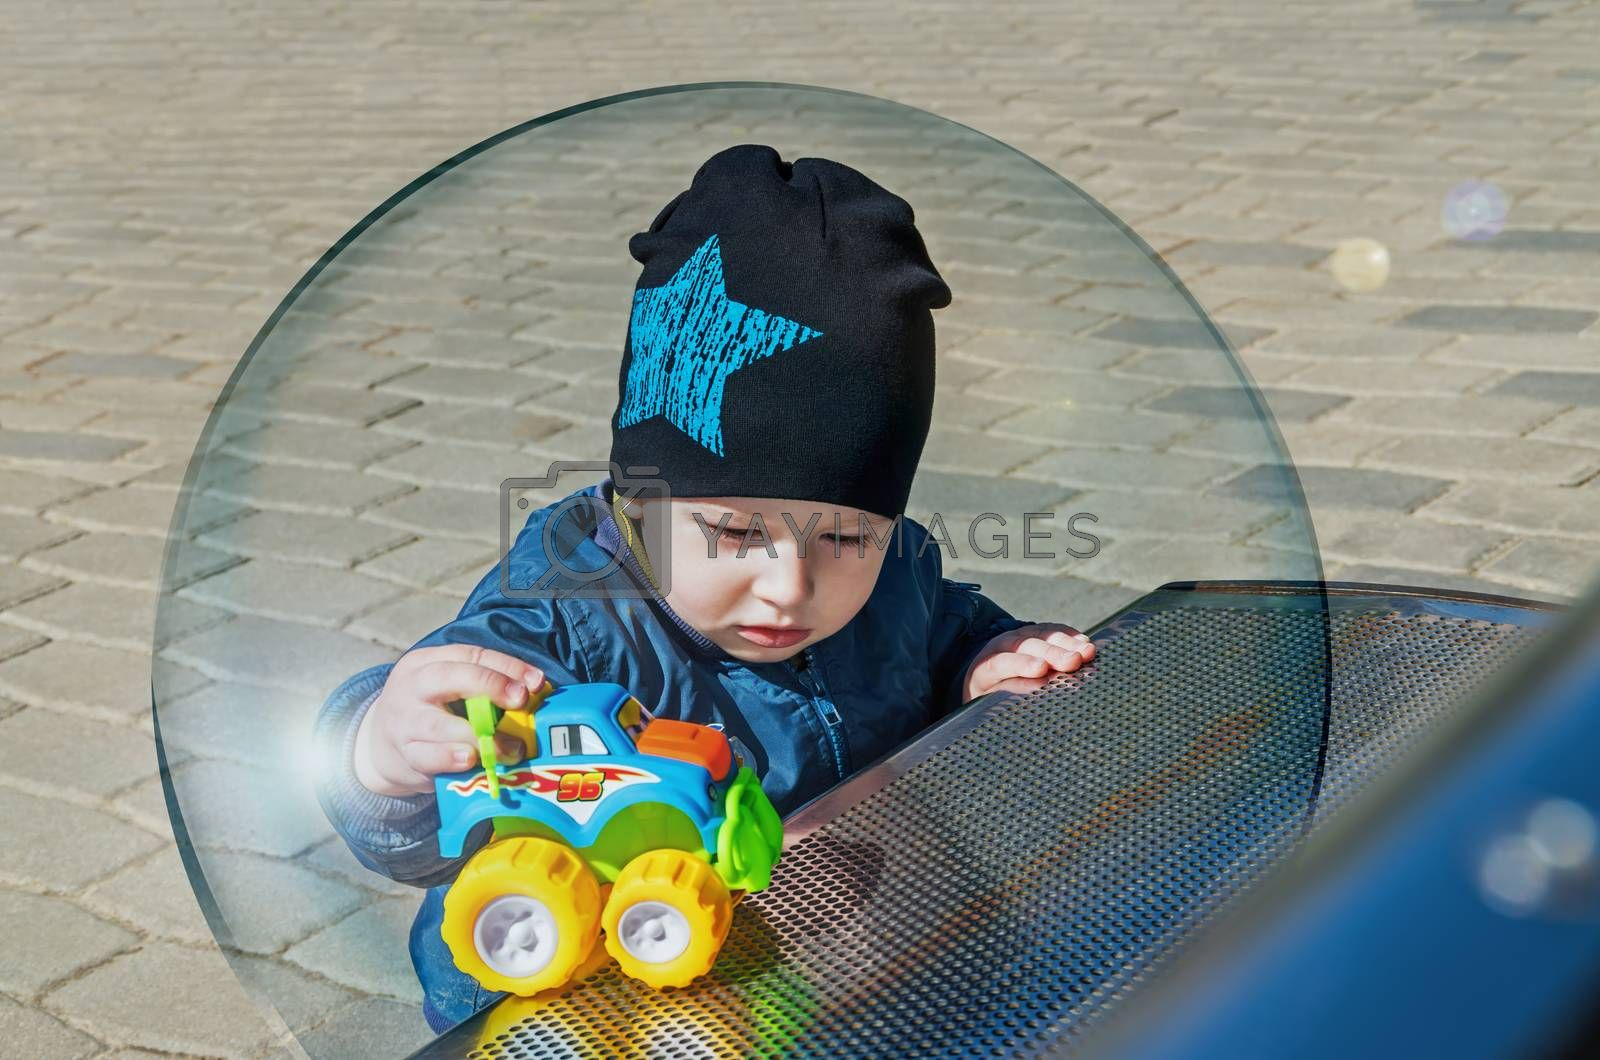 A little boy inside a glass ball symbolizing the protection of children from viral infection